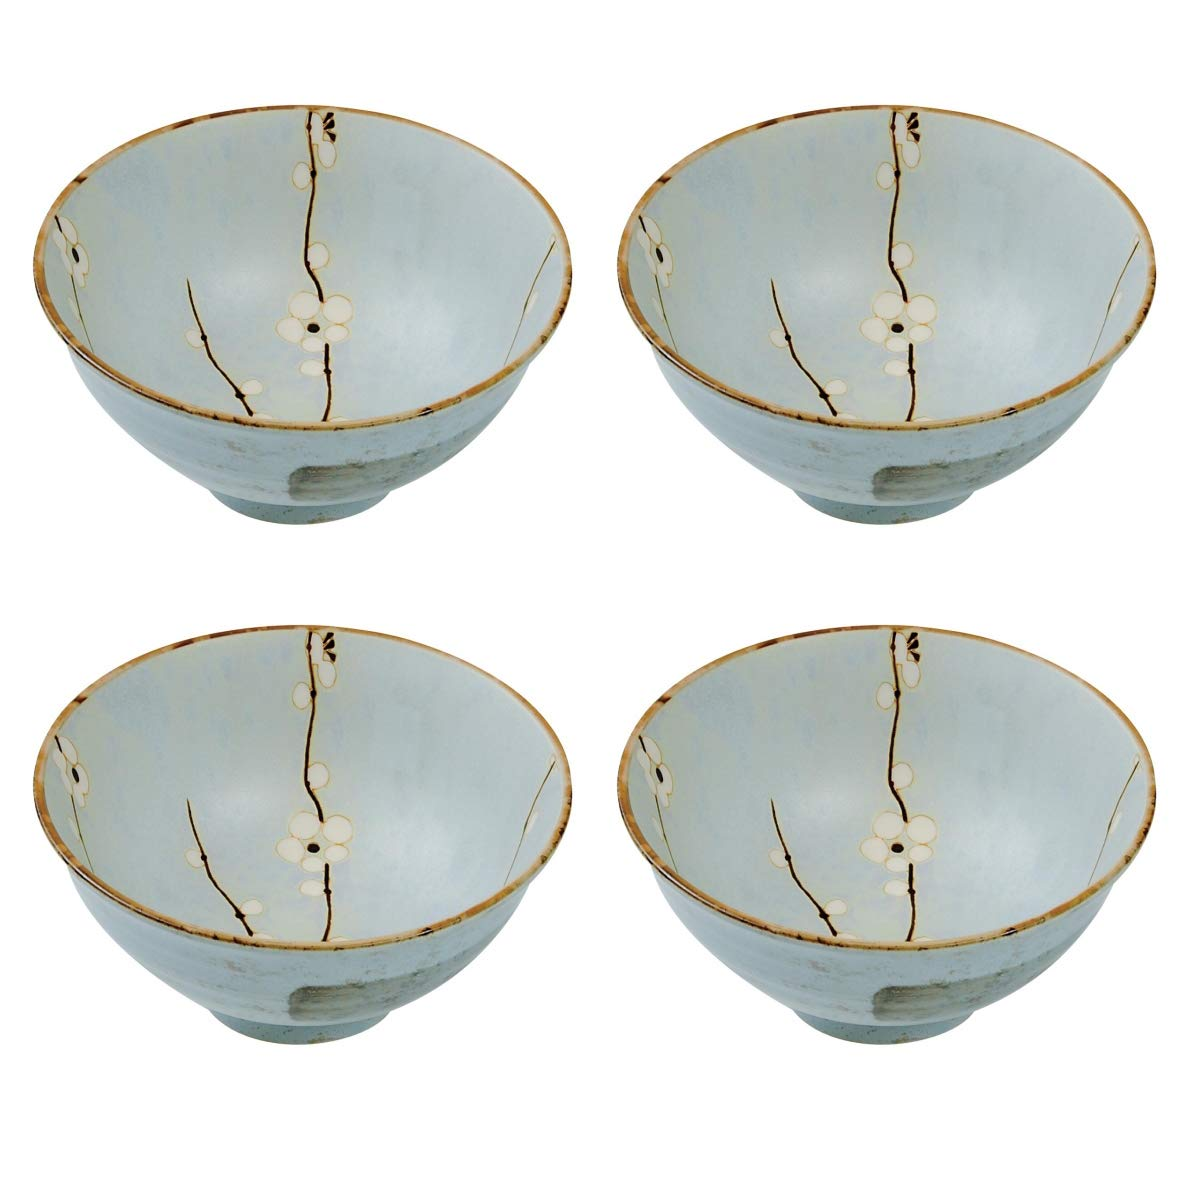 Hinomaru Collection Japanese Soshun Early Spring Cherry Blossom Set of 4 Ceramic Donburi Rice Bowl Tayo Multi Purpose Mint Green - Made In Japan (6.25'' Dia x 3.25'' H)